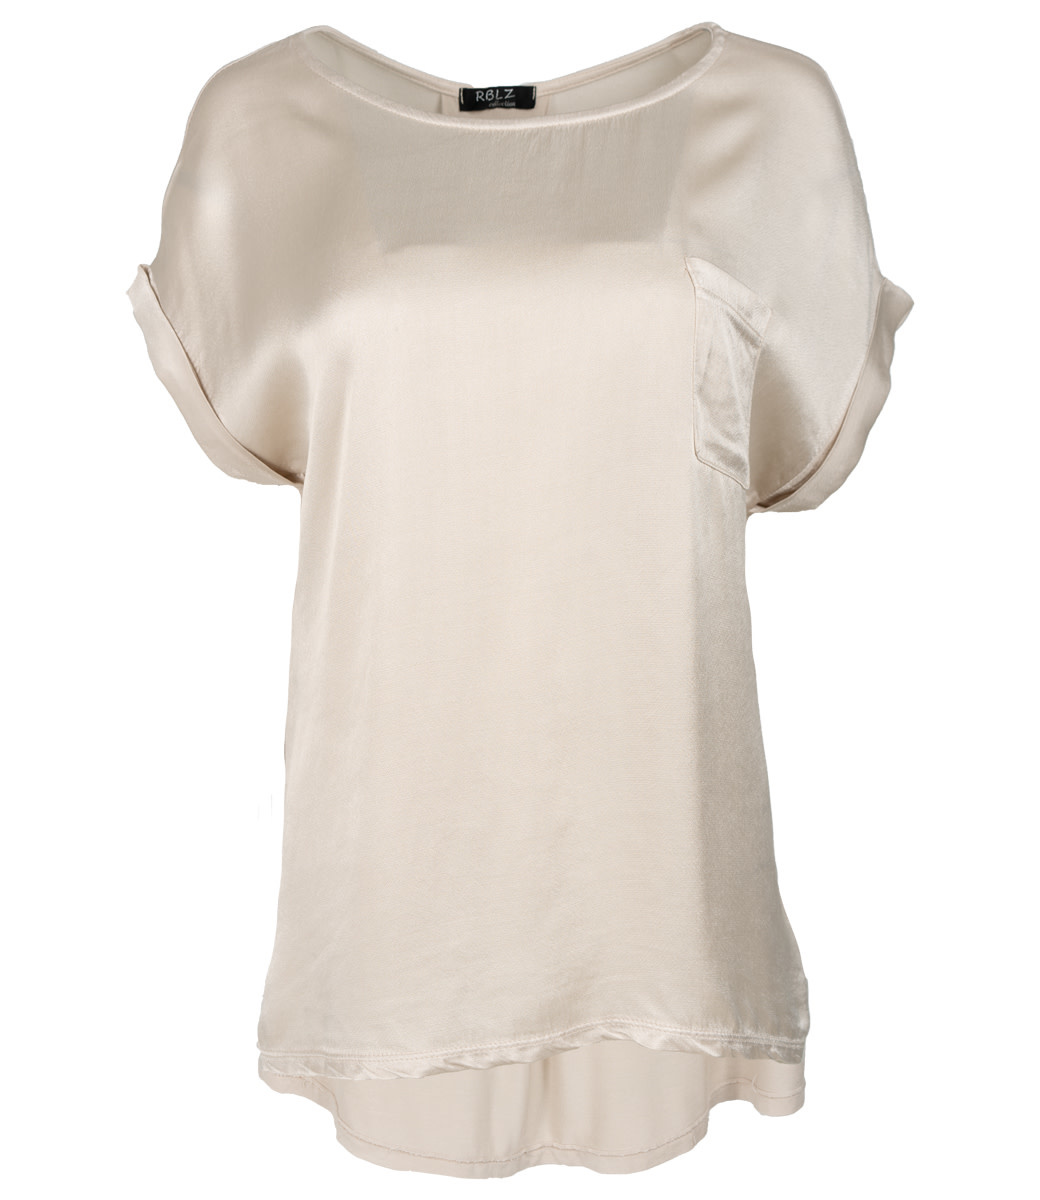 Rebelz Collection Shirt beige Nadia